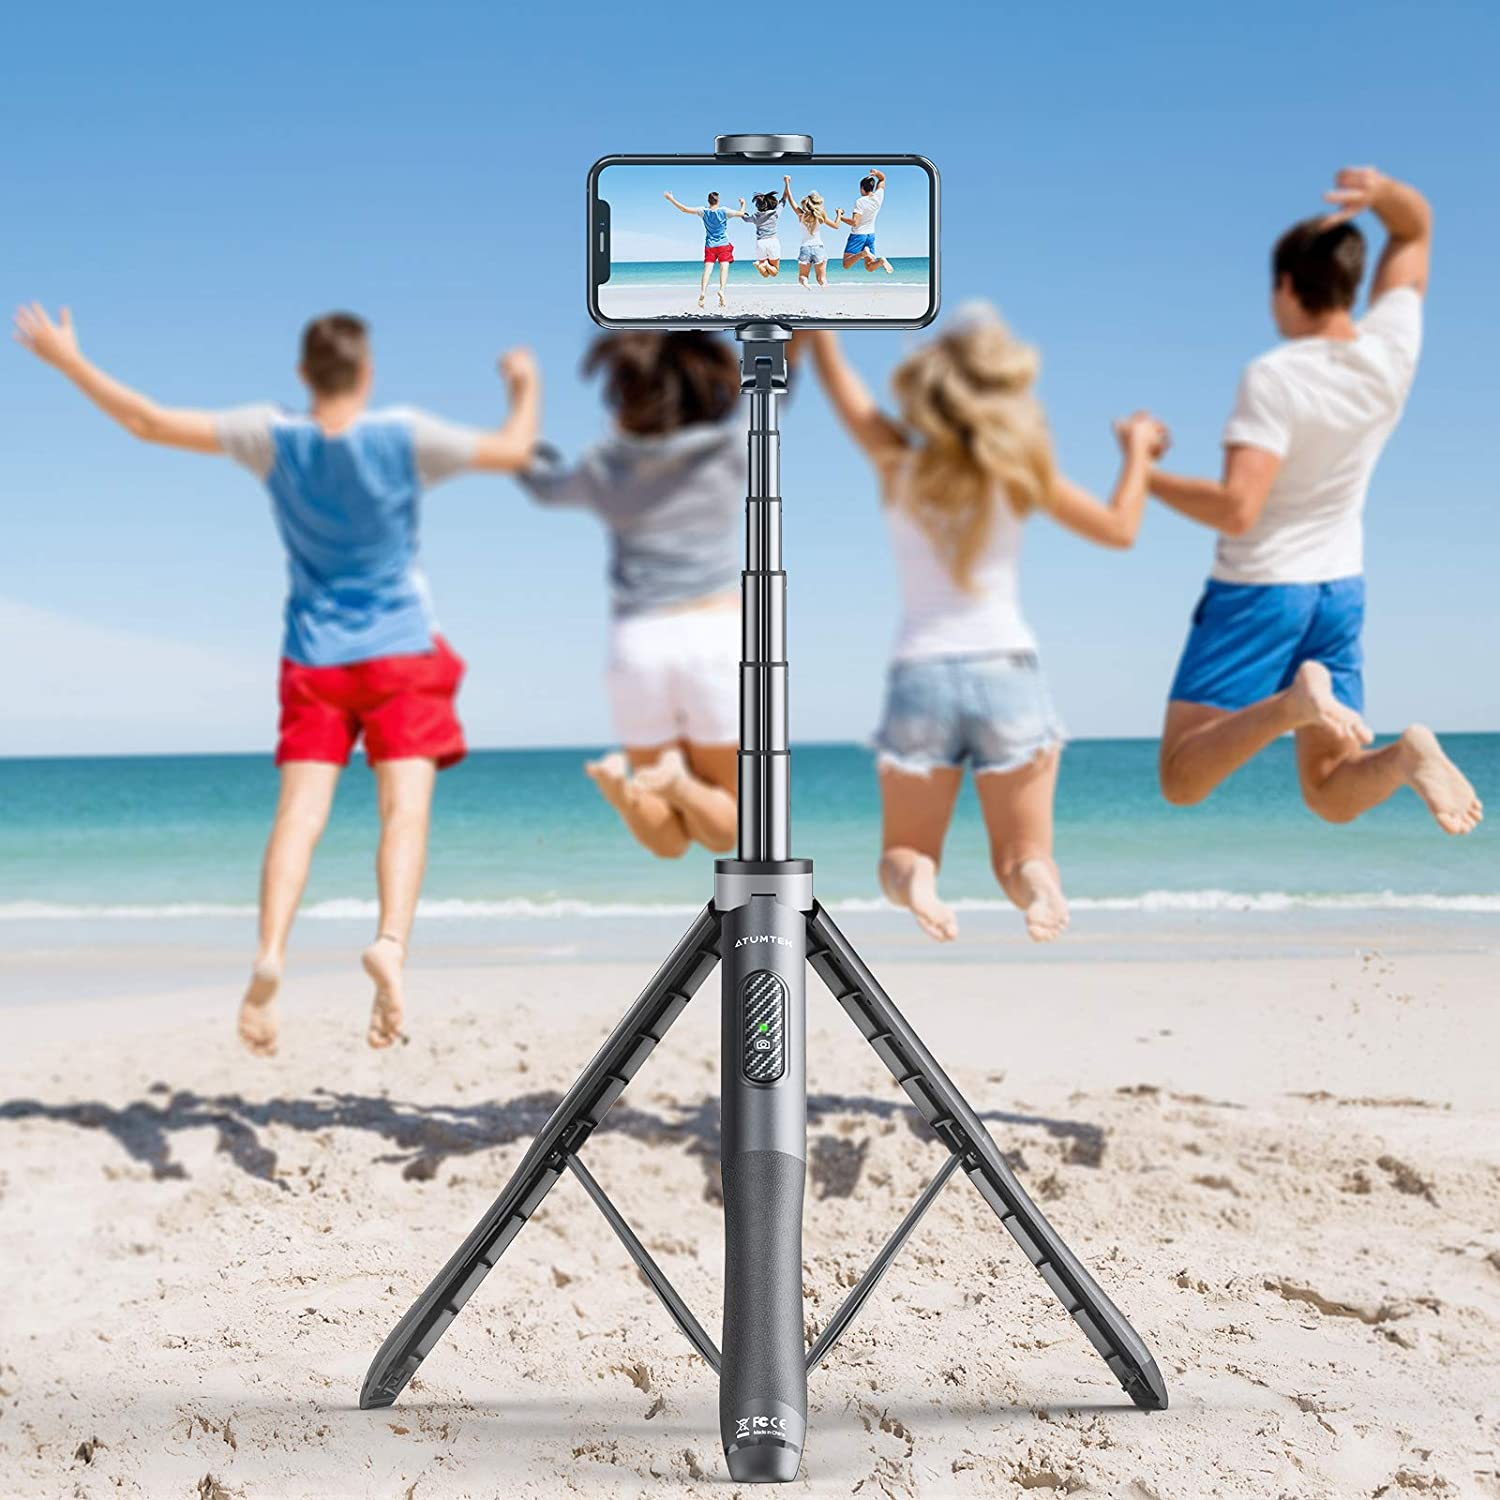 ATUMTEK 51 Selfie Stick Tripod Blue All in One Extendable Phone Tripod Stand with Bluetooth Remote 360/° Rotation for iPhone and Android Phone Selfies Video Recording Live Streaming Vlogging